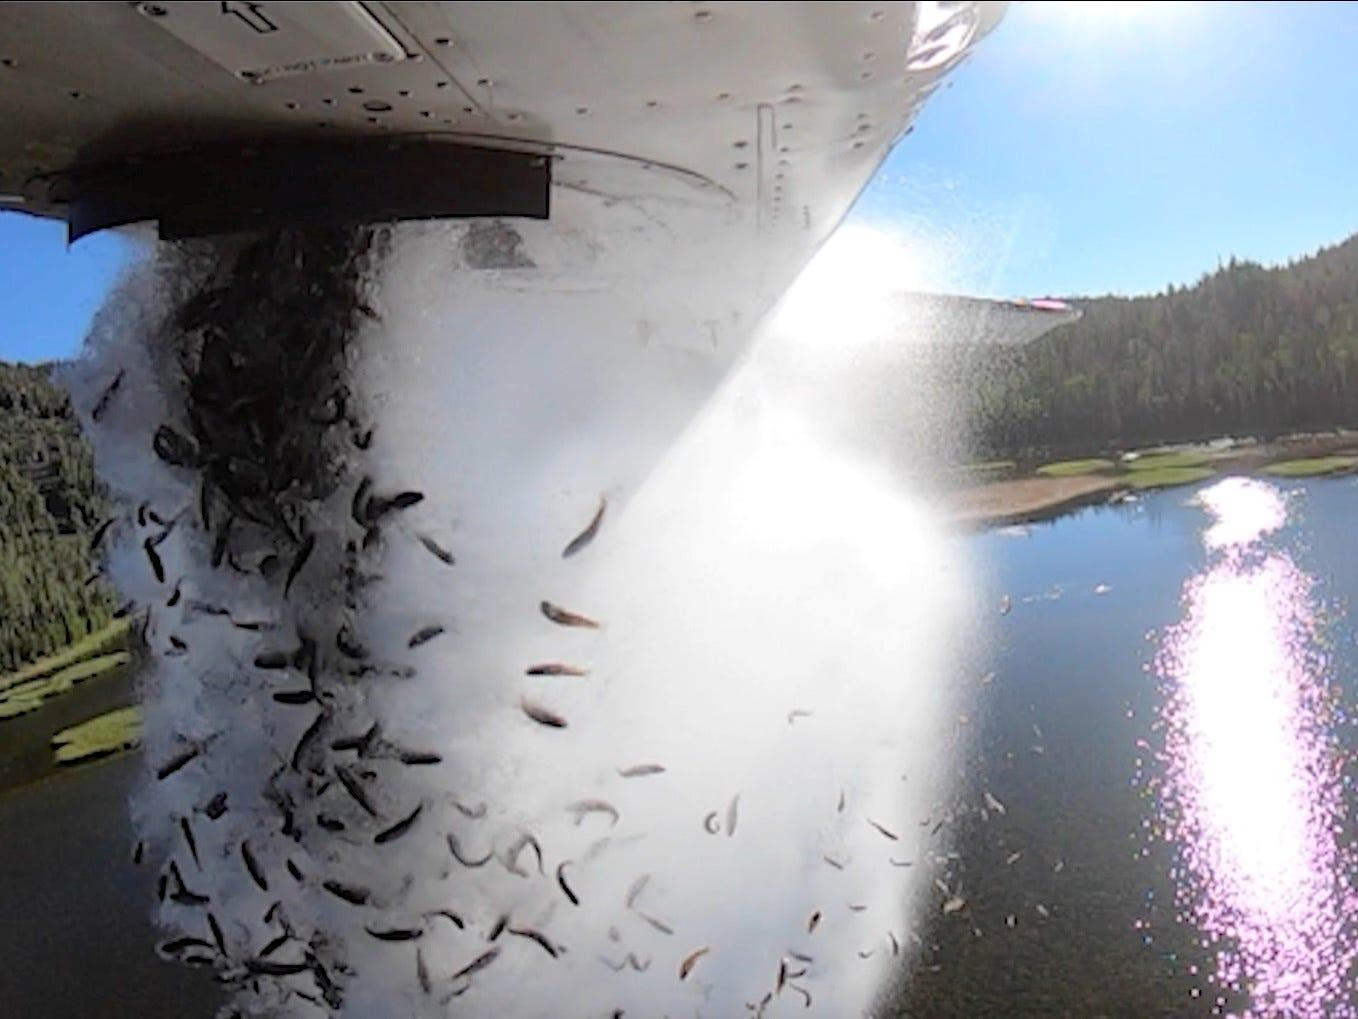 Video shows Utah wildlife agency restocking lakes by dumping thousands of fish from a plane